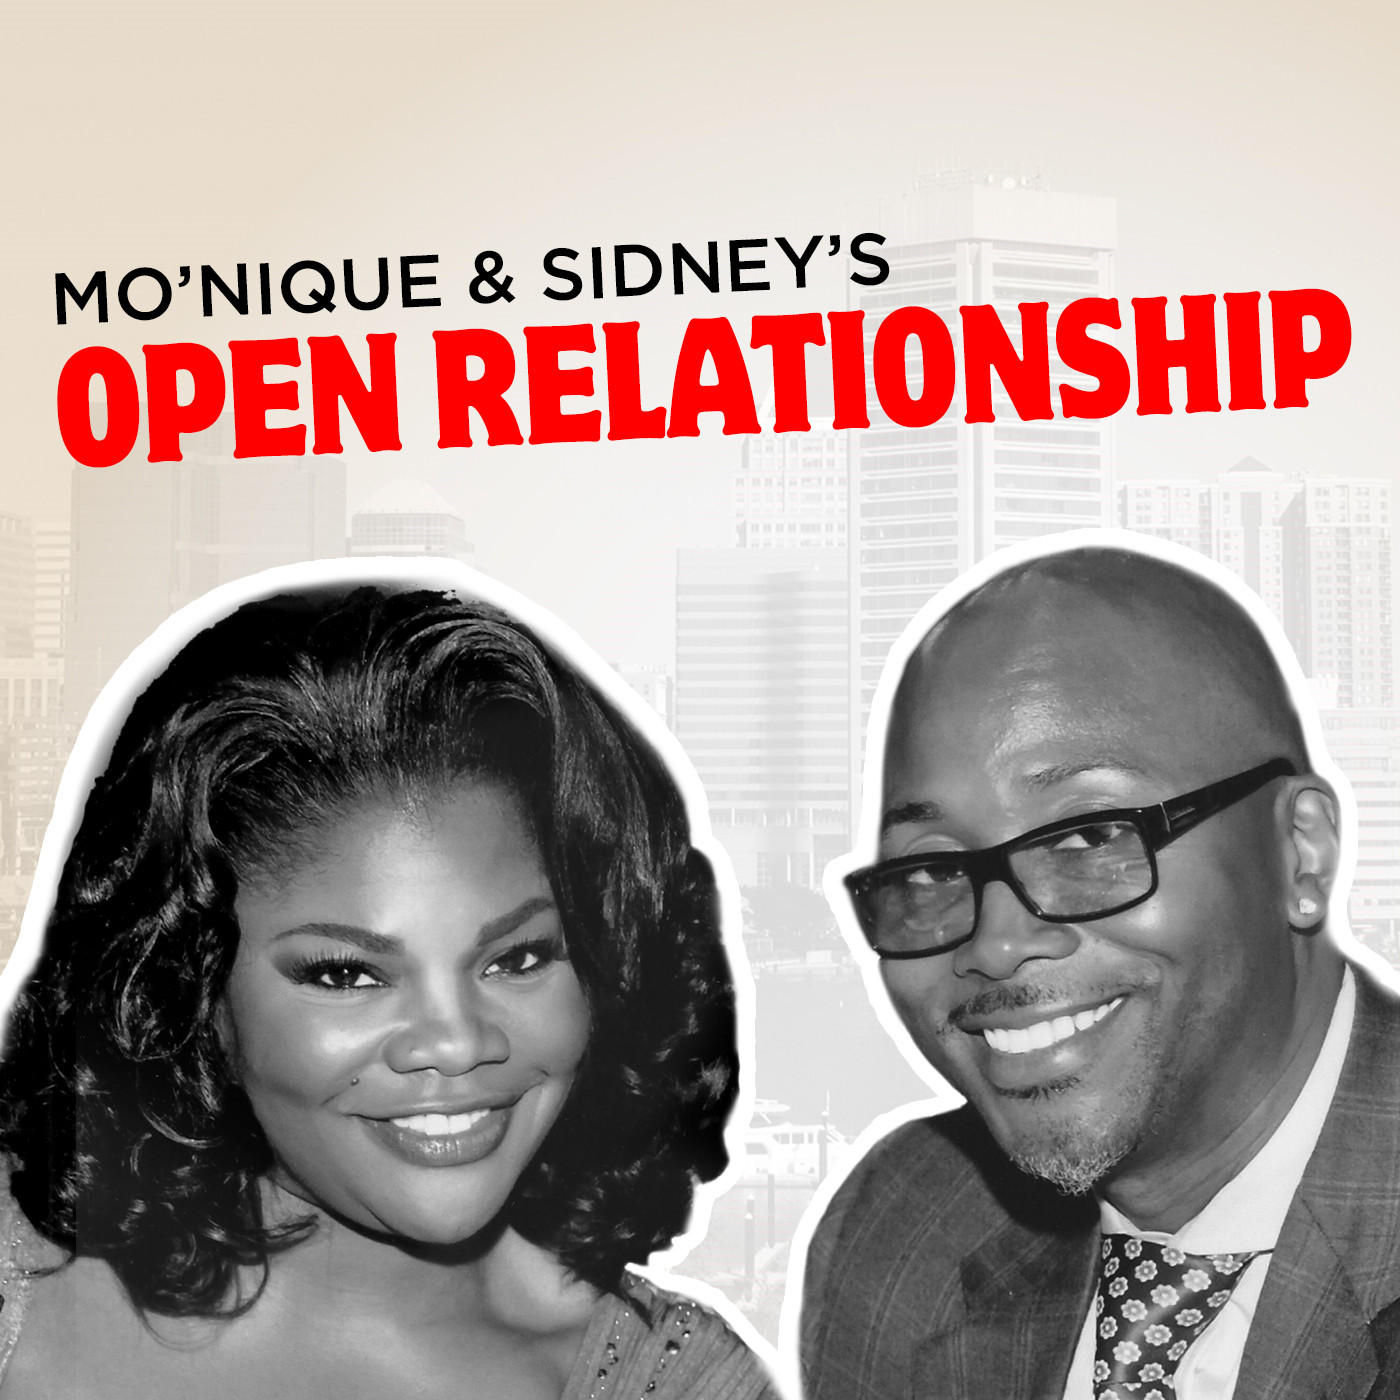 Mo'Nique & Sidney's Open Relationship